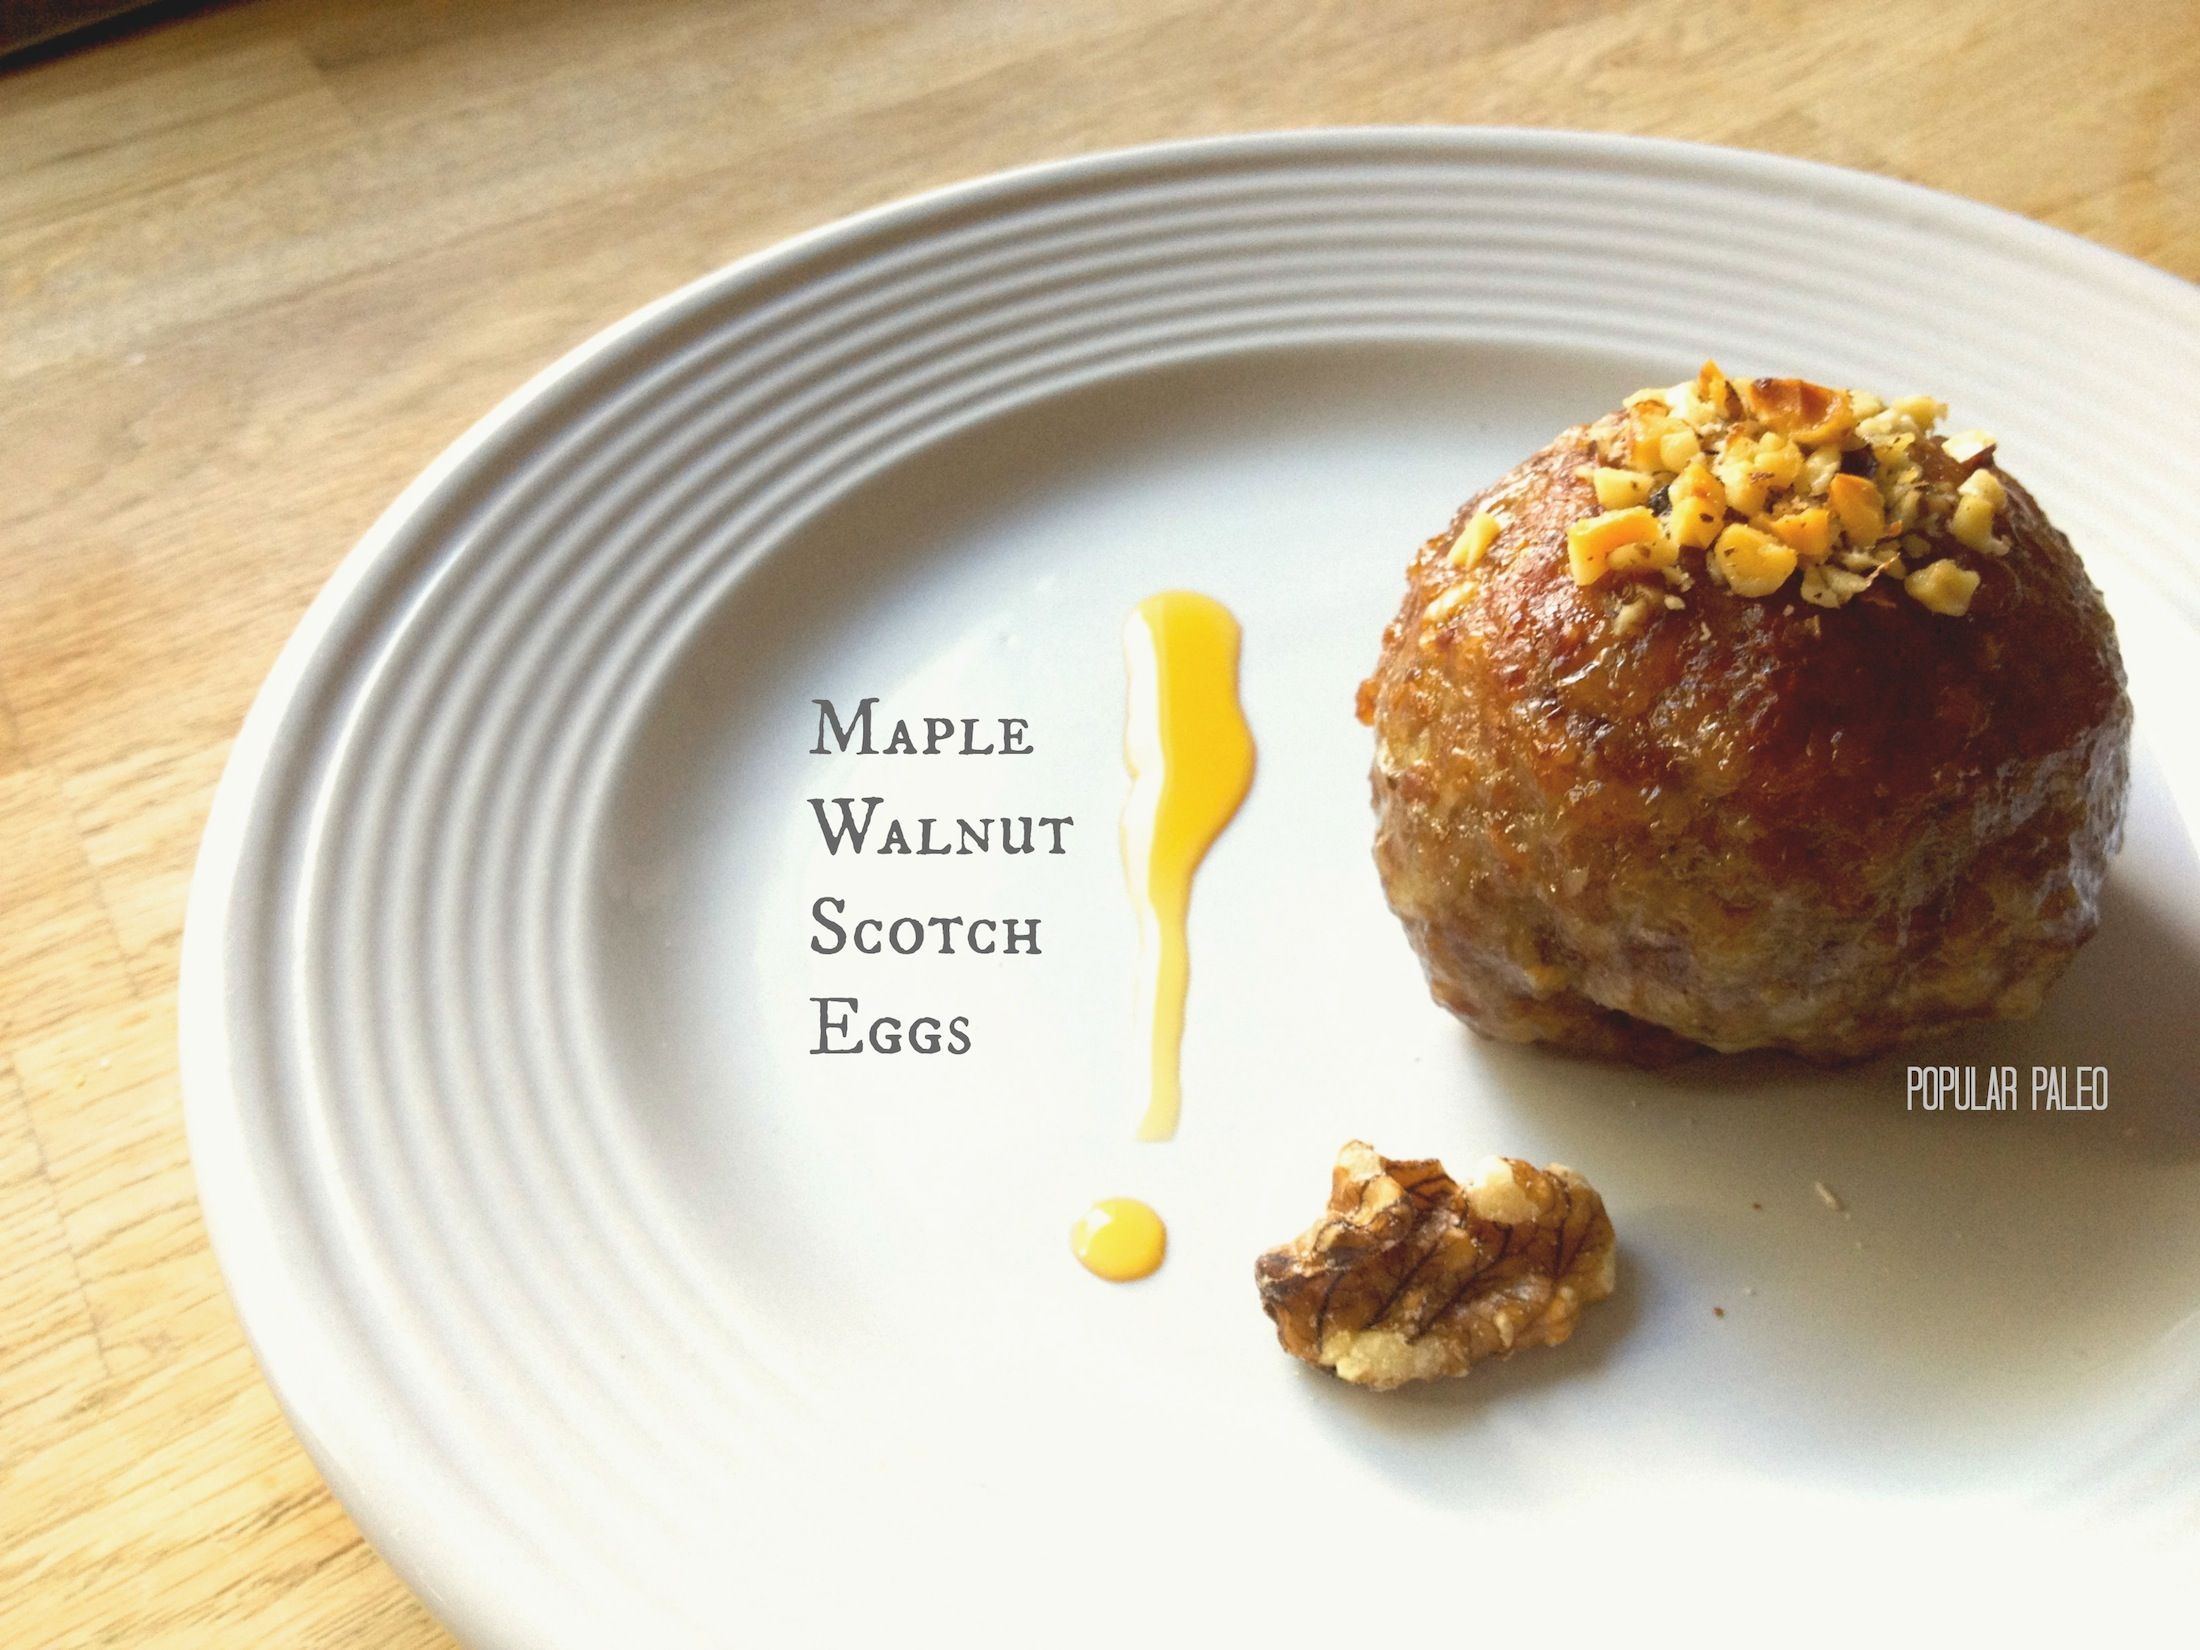 Pure maple syrup adds a touch of rich sweetness to the classic Scotch Egg, and crunchy walnuts puts them over the top!